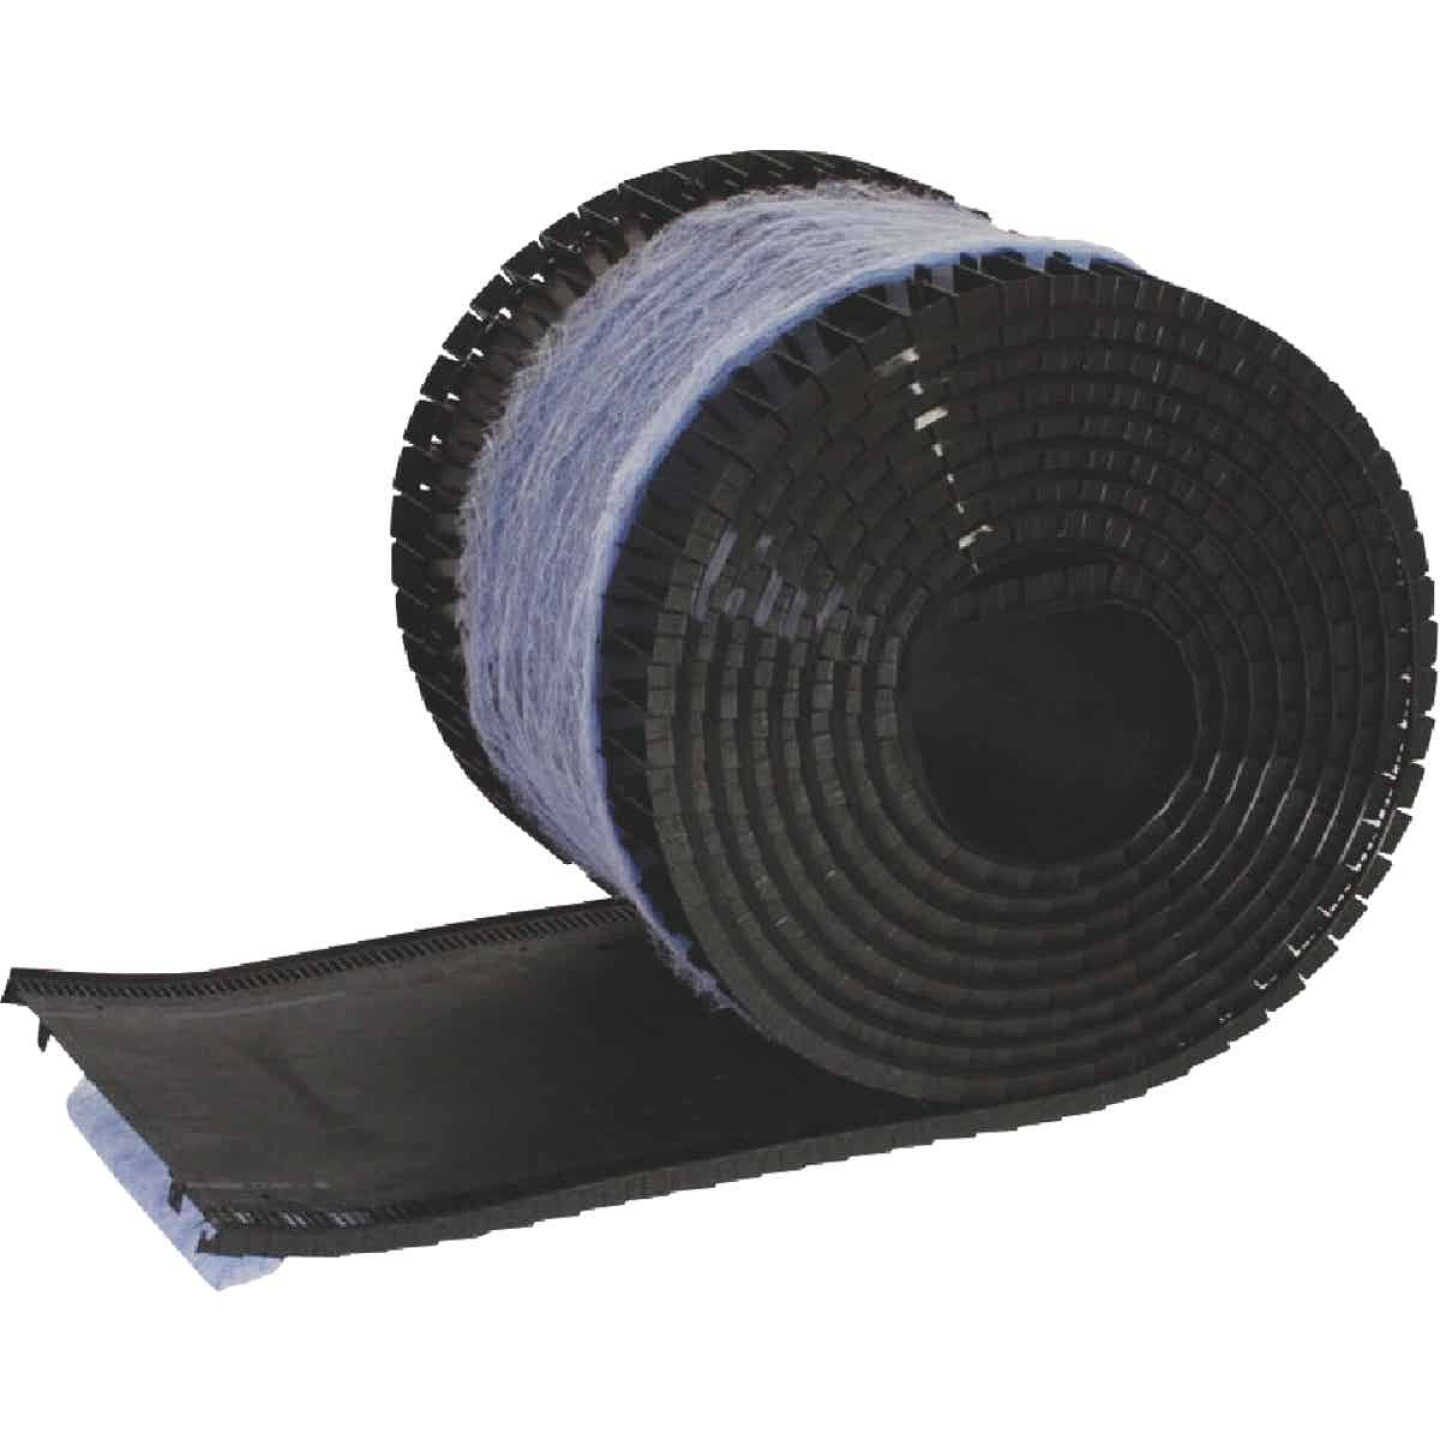 Air Vent Peak Performer II 28 Ft. Filtered Shingle-Over Rolled Ridge Vent Image 2